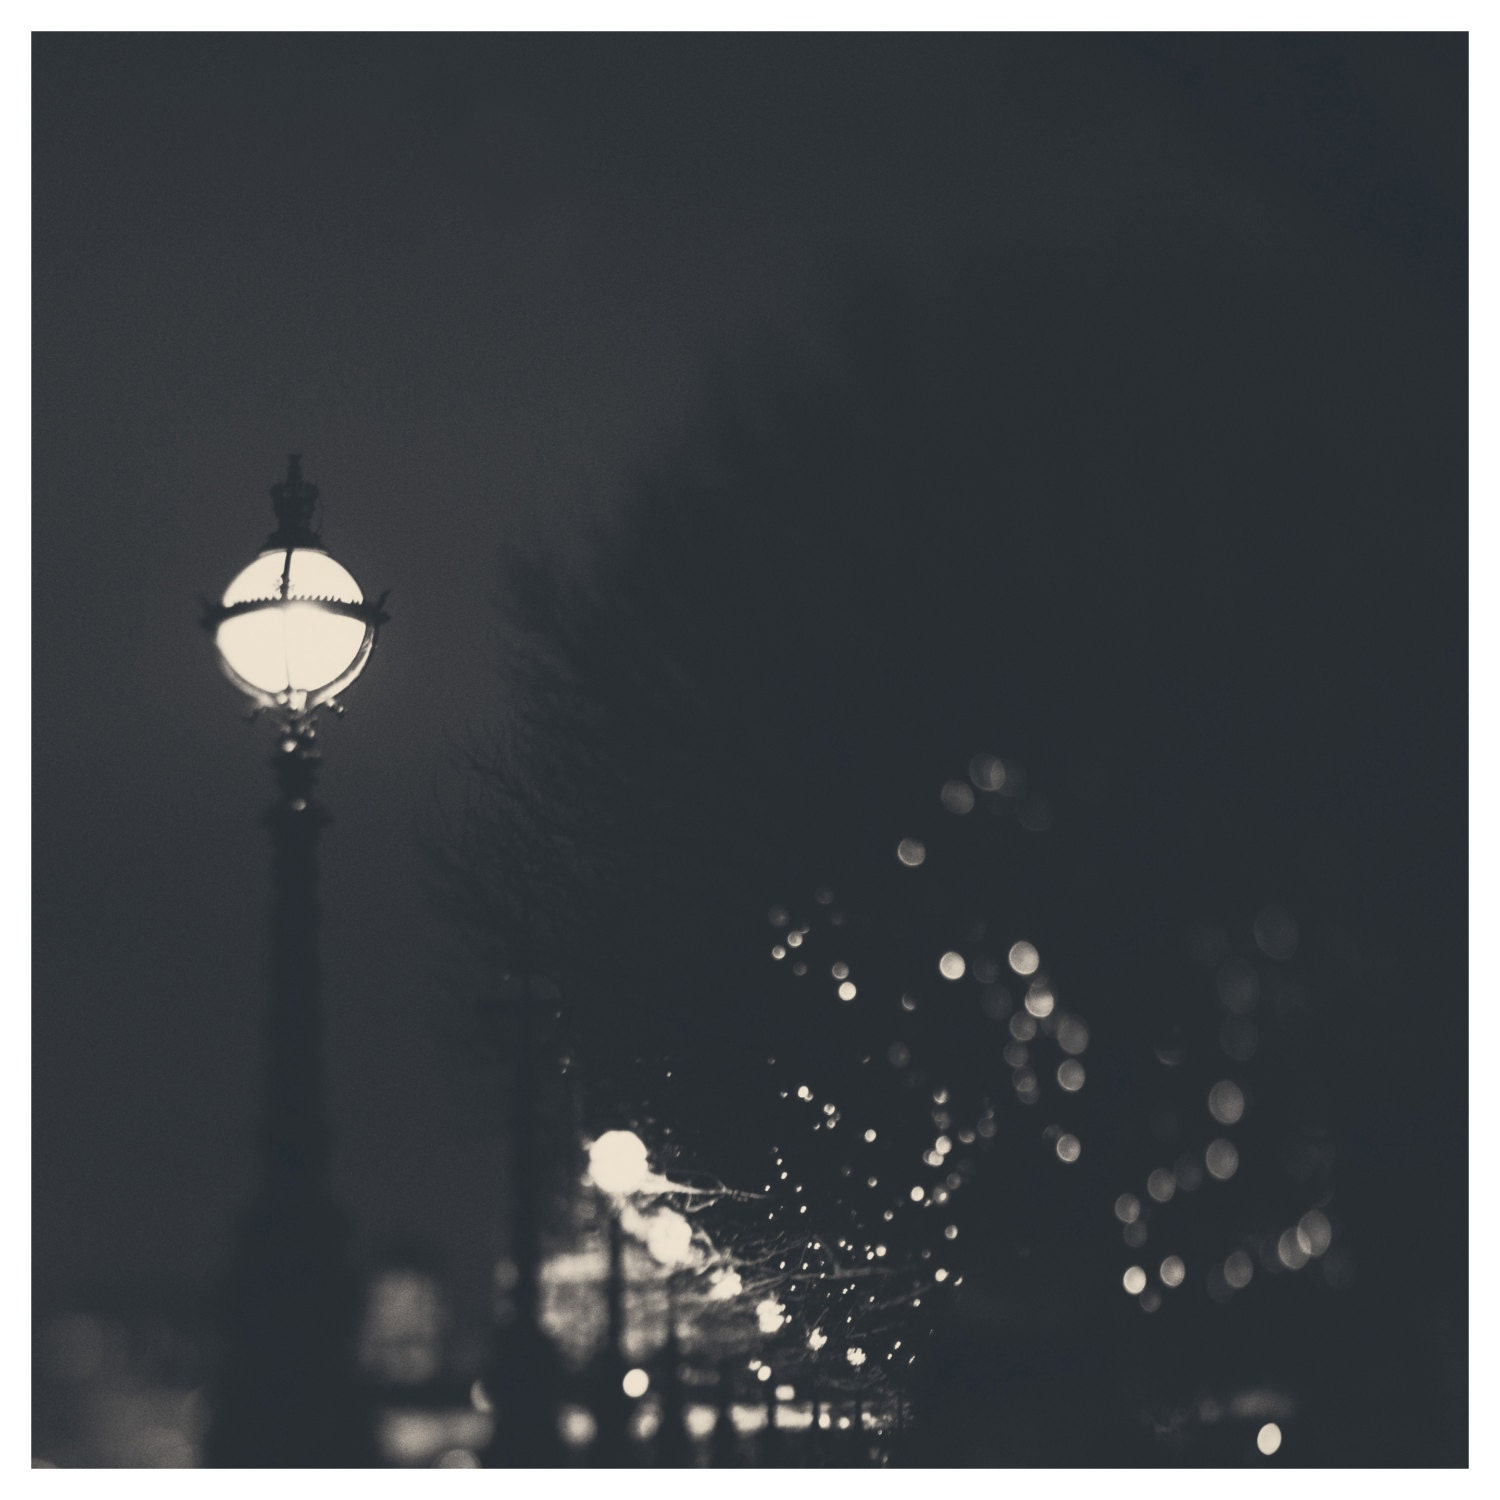 london night light black and white photo print - whimsical fine art photography, city, bokeh, romantic, thames - sweetdreamsandhoney